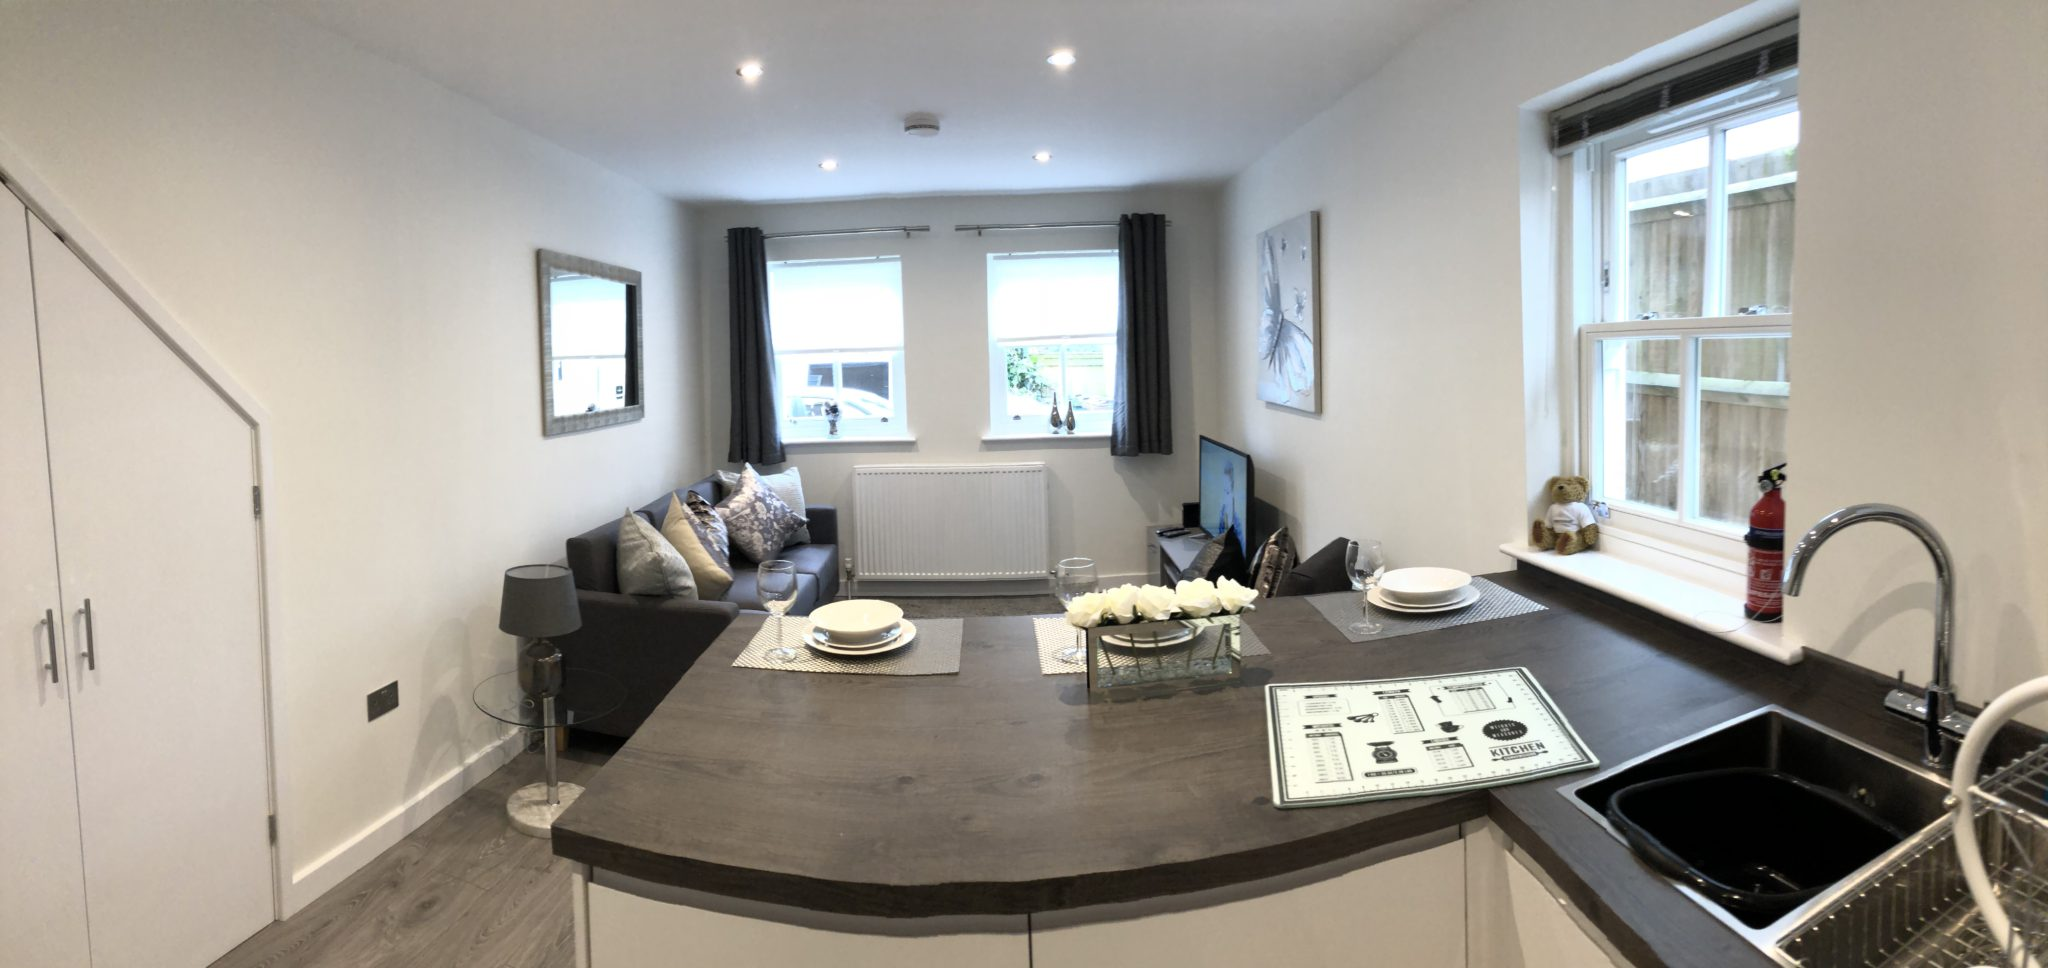 Serviced-Apartments-St-Albans-Hertfordshire-available-now!-Book-Cheap-Short-Let-Apartments-with-Free-Wifi-&-Parking-&-a-Fully-Equipped-Kitchen